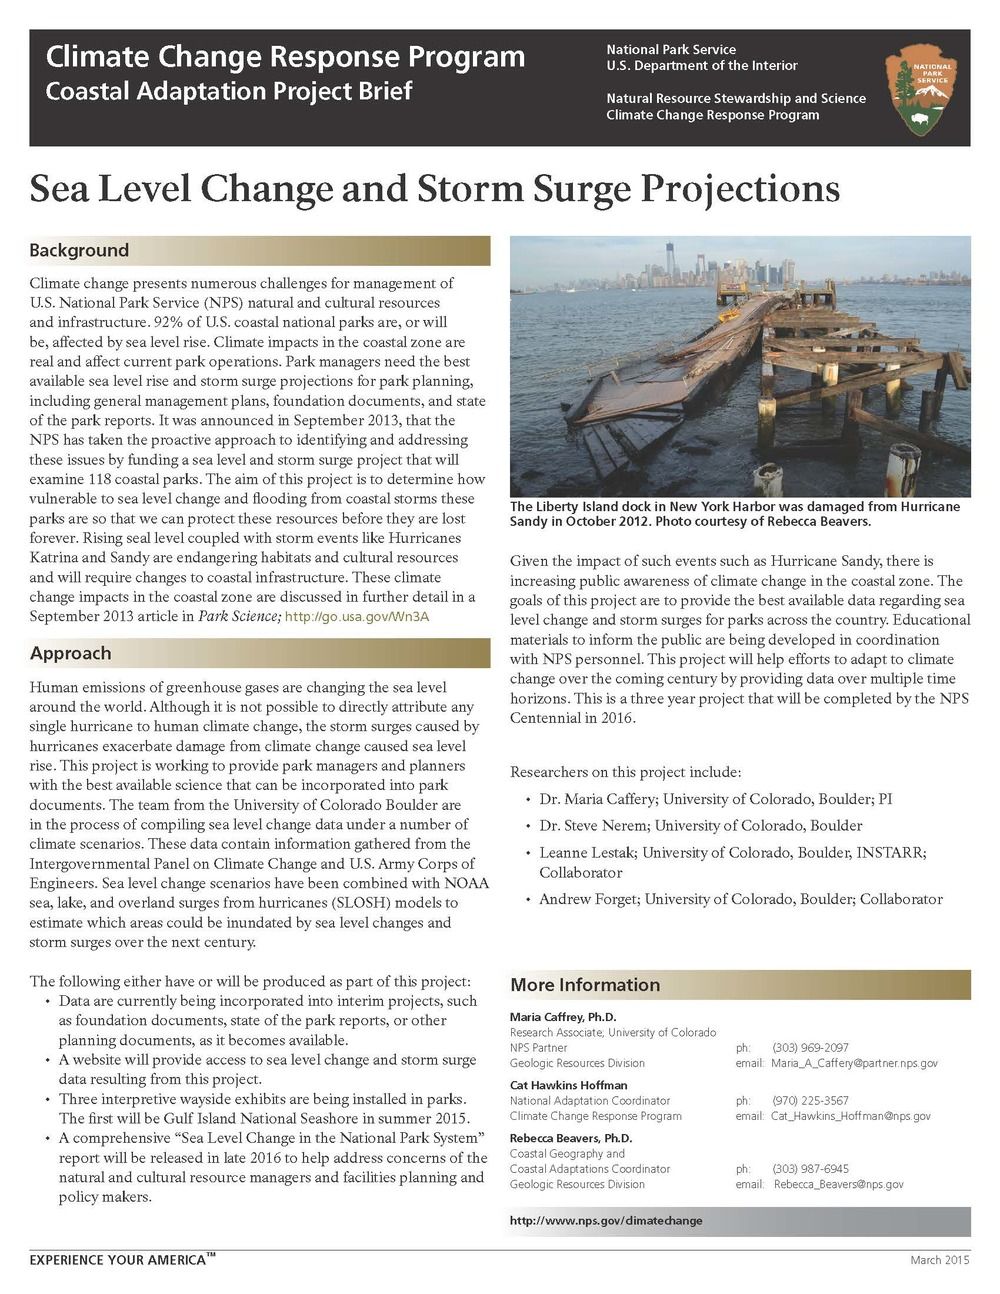 NPS Units to Sea Level Change 2015 Project Bief